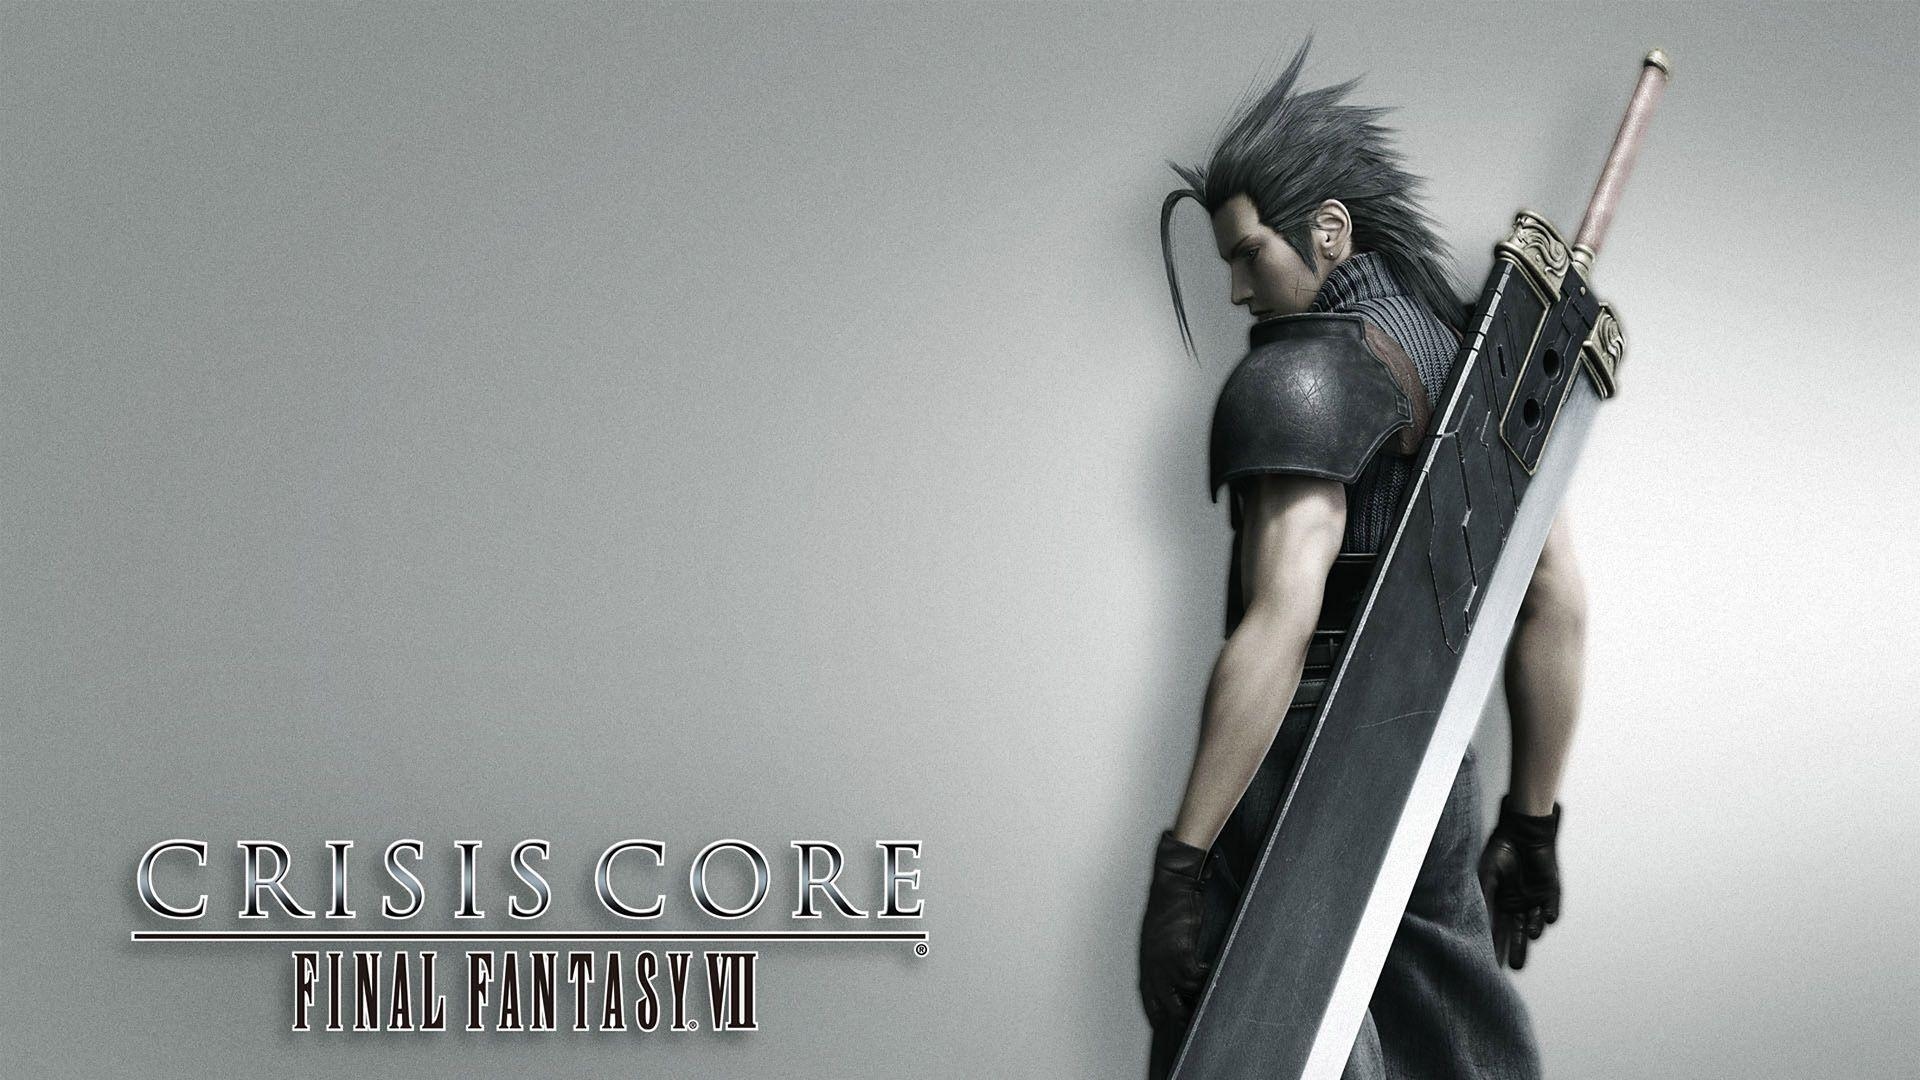 Final fantasy wallpapers crisis cool 1920x1080 px